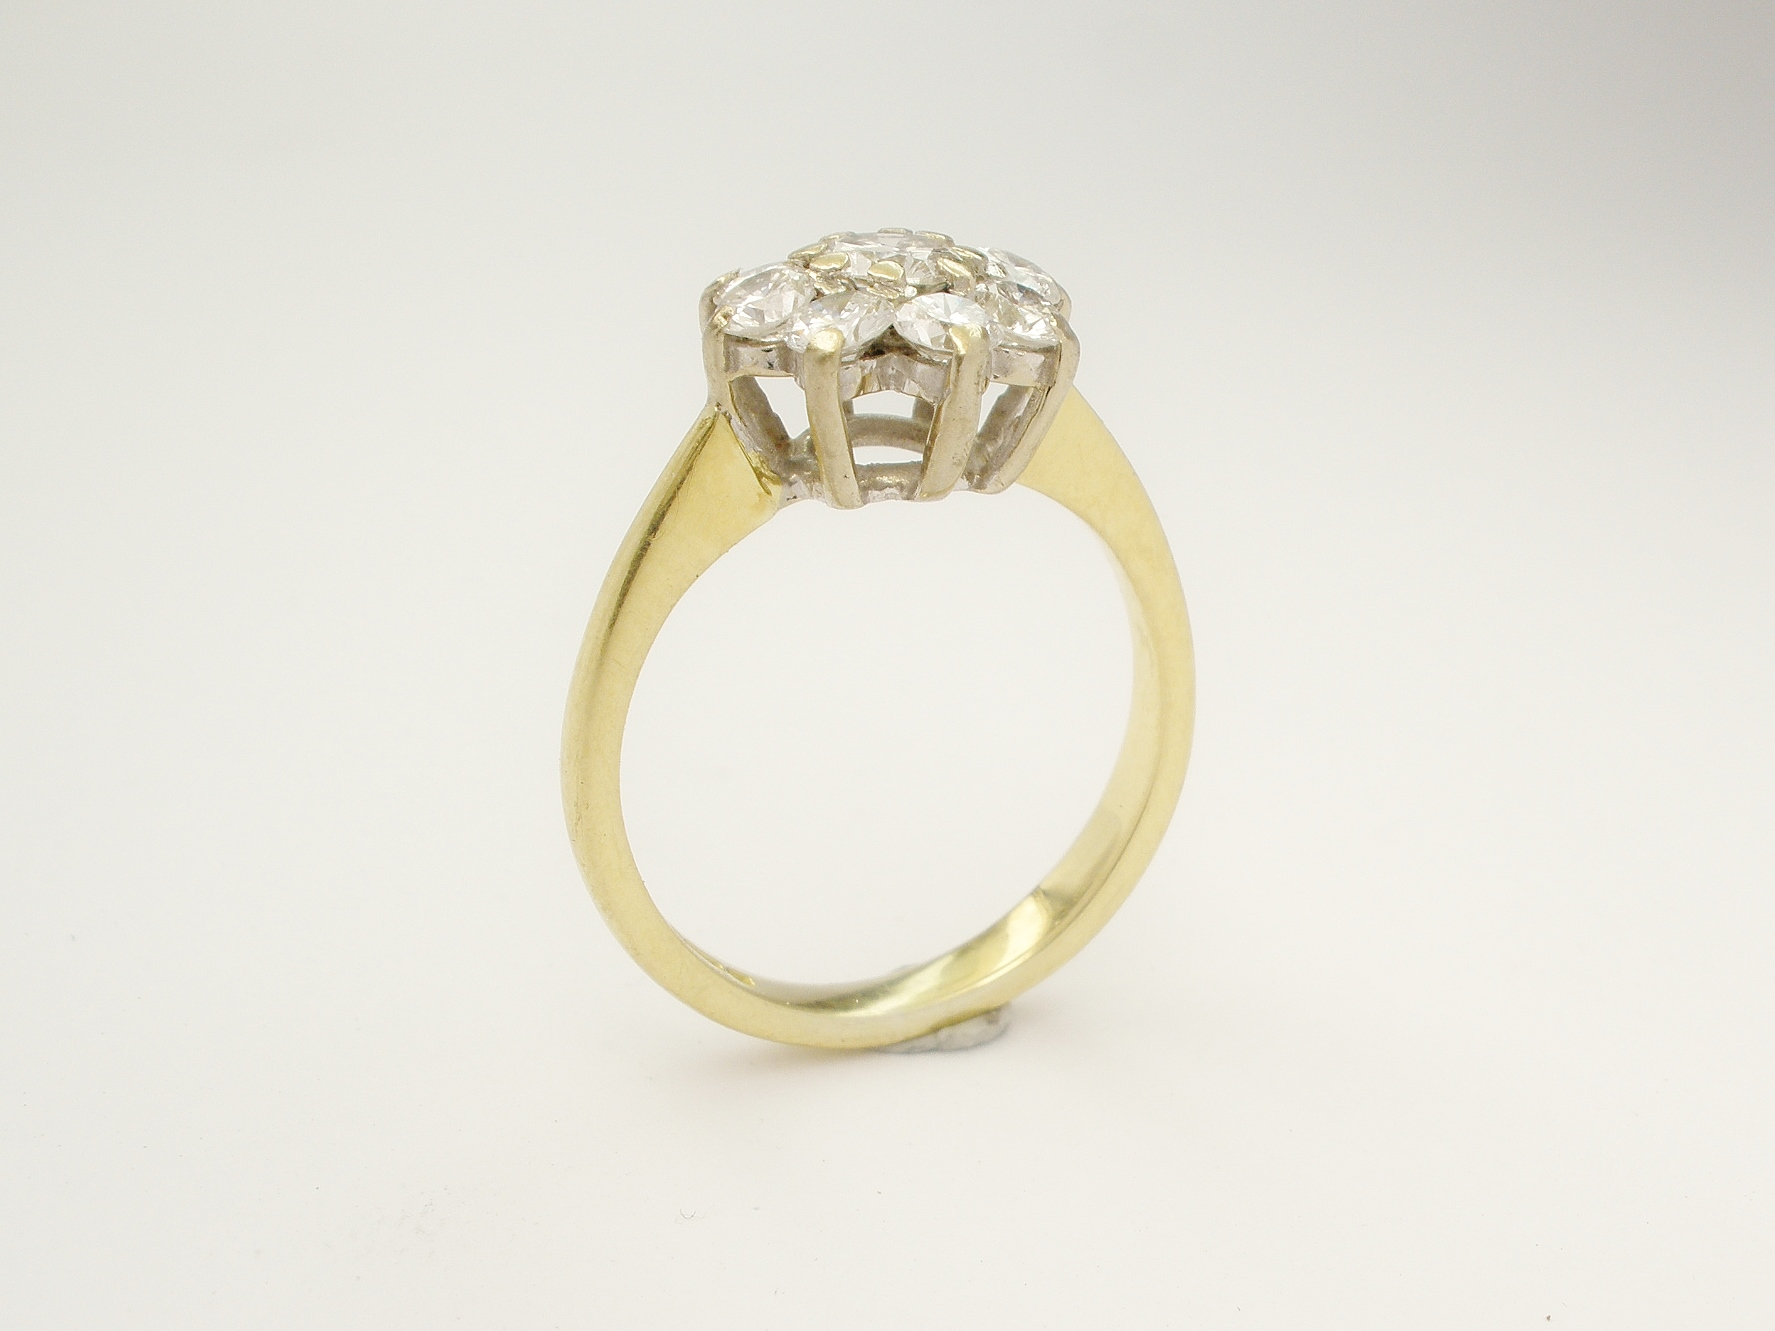 Customer's original 18ct. yellow & white gold 9 stone diamond cluster ring.